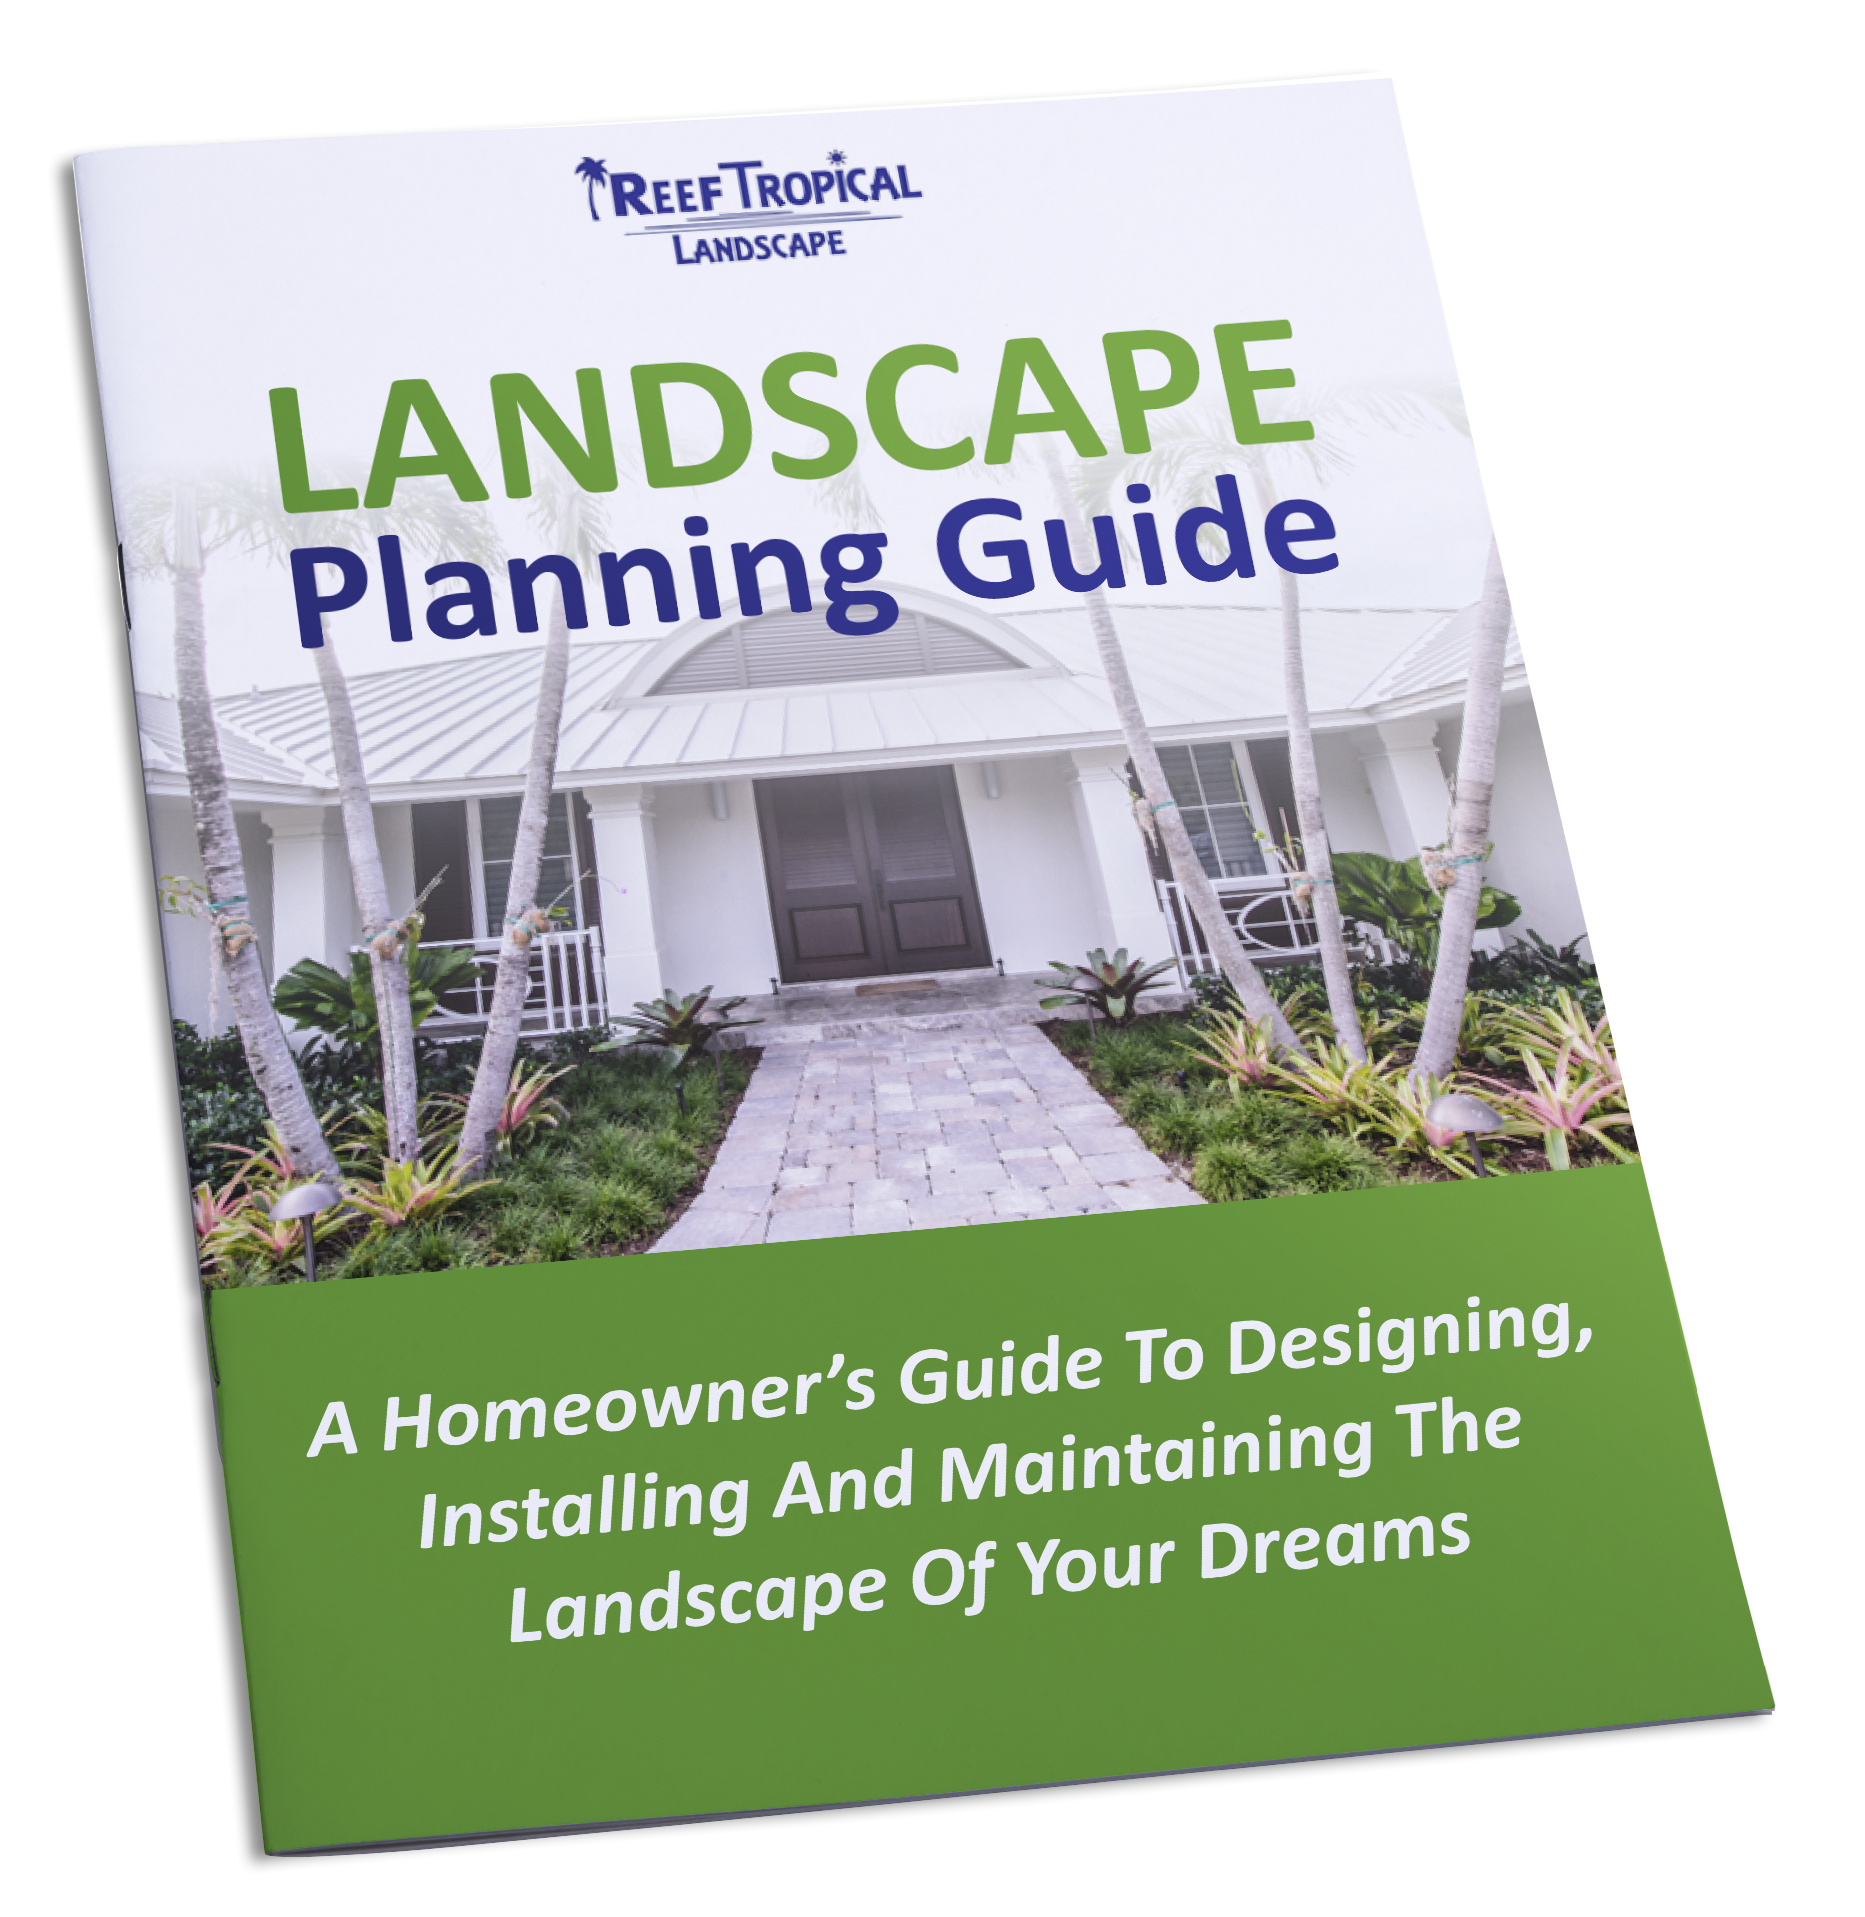 Reef Tropical Landscape Planning Guide